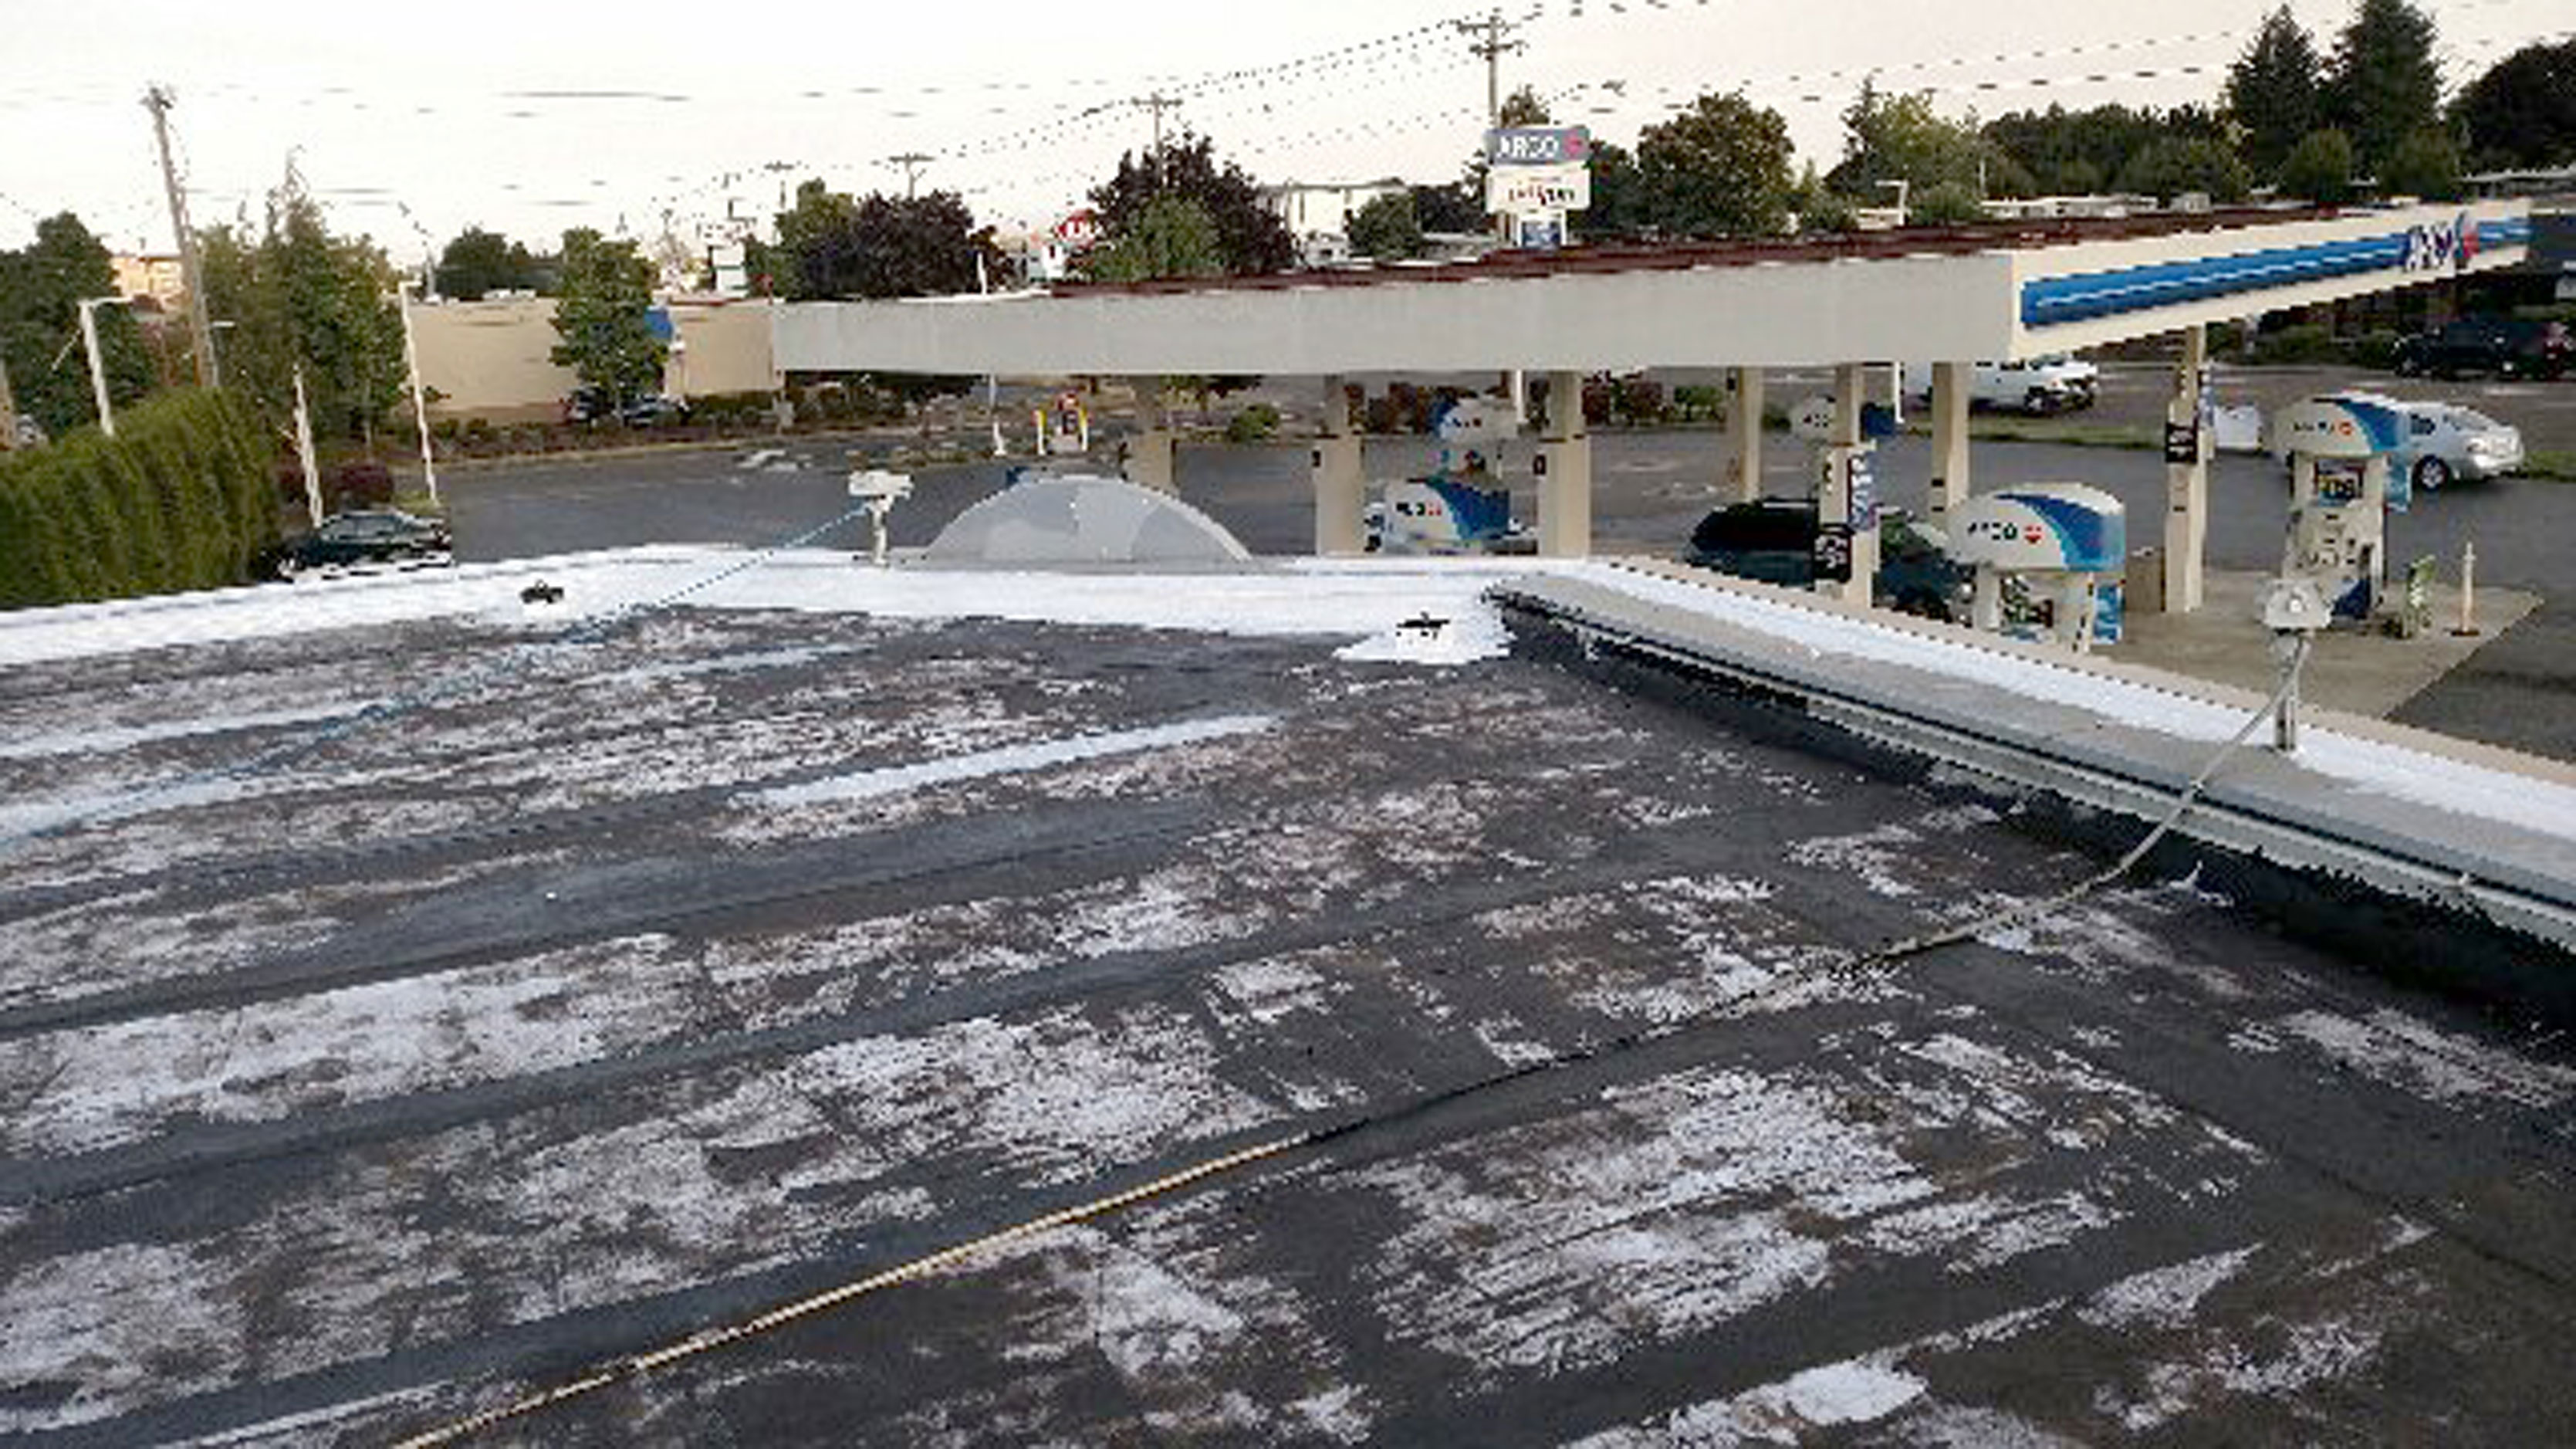 Commercial Inustrial Roofing Contractor In Portland